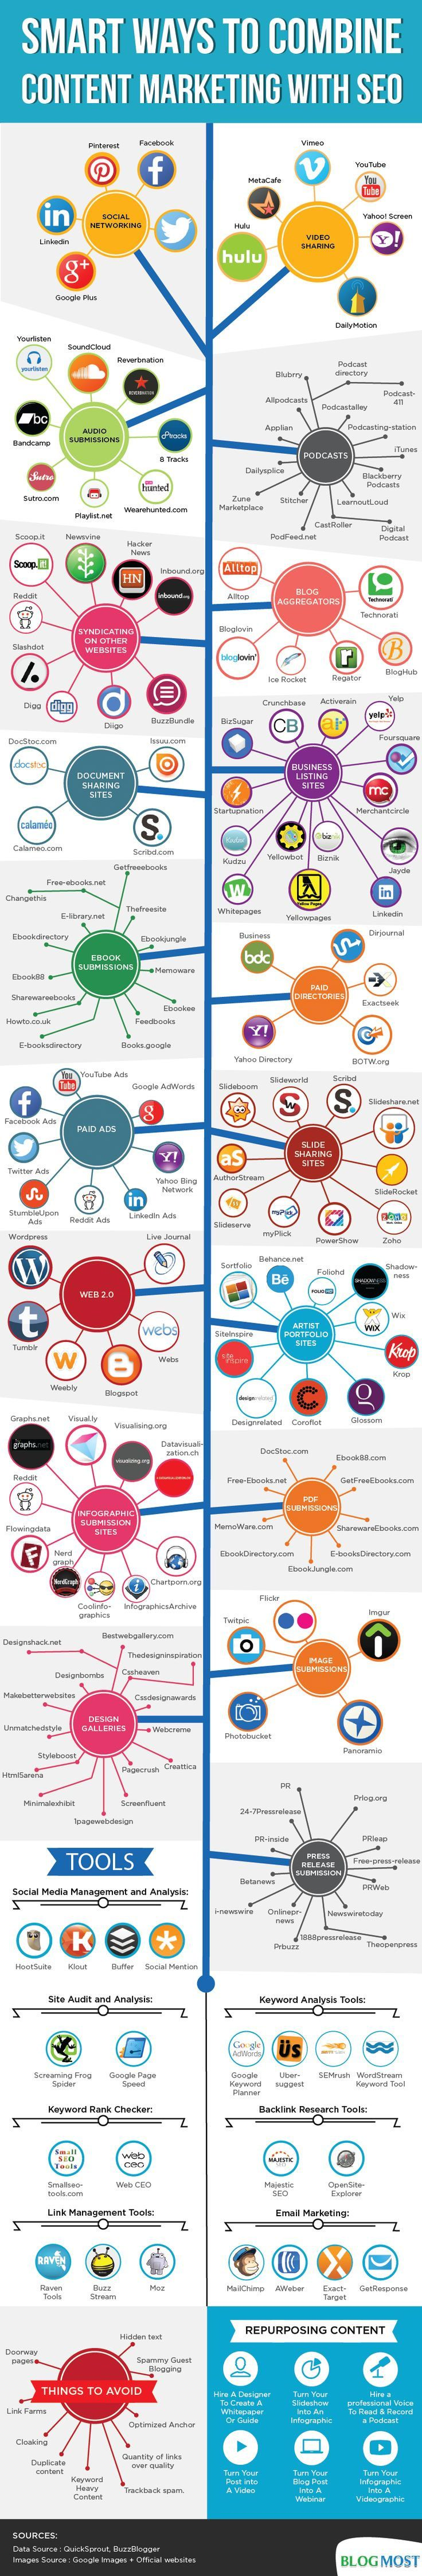 SEO & Content Marketing Combined : Webmag.co   Digital Resources for Net Professionals.